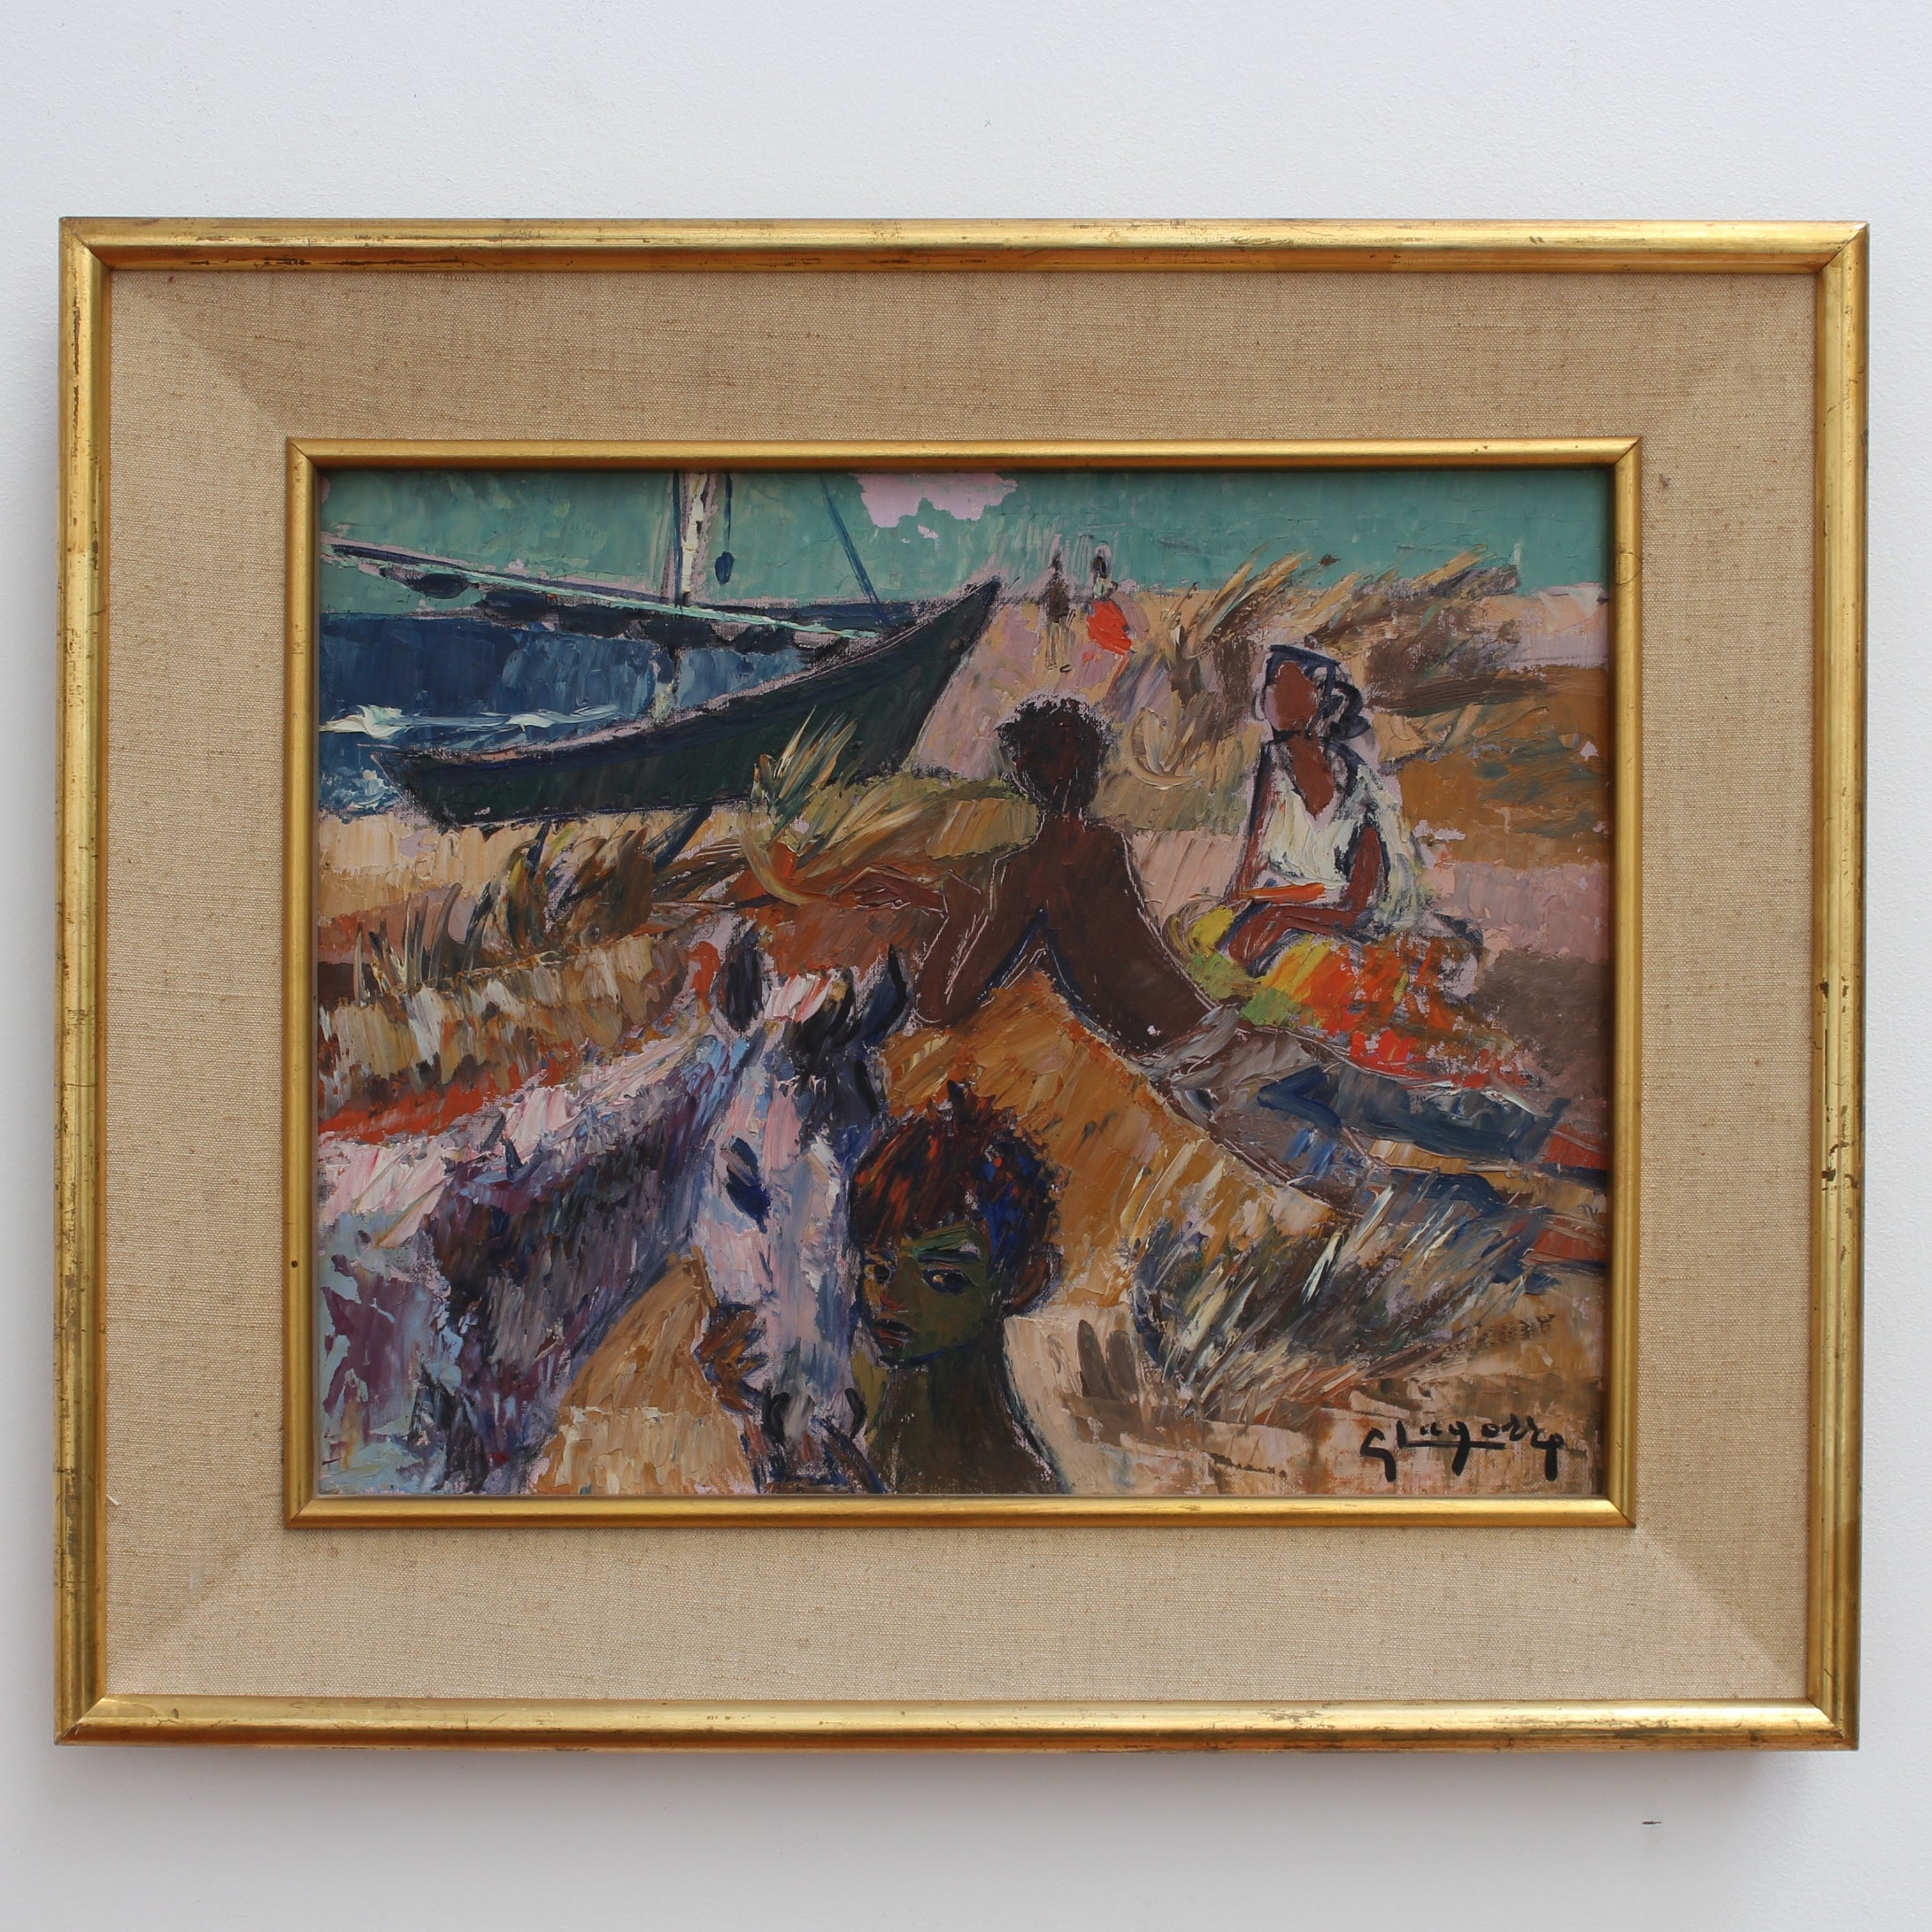 'Gitans sur la Plage (Gypsies on the Beach)' by Gaston Lagorre (1958)